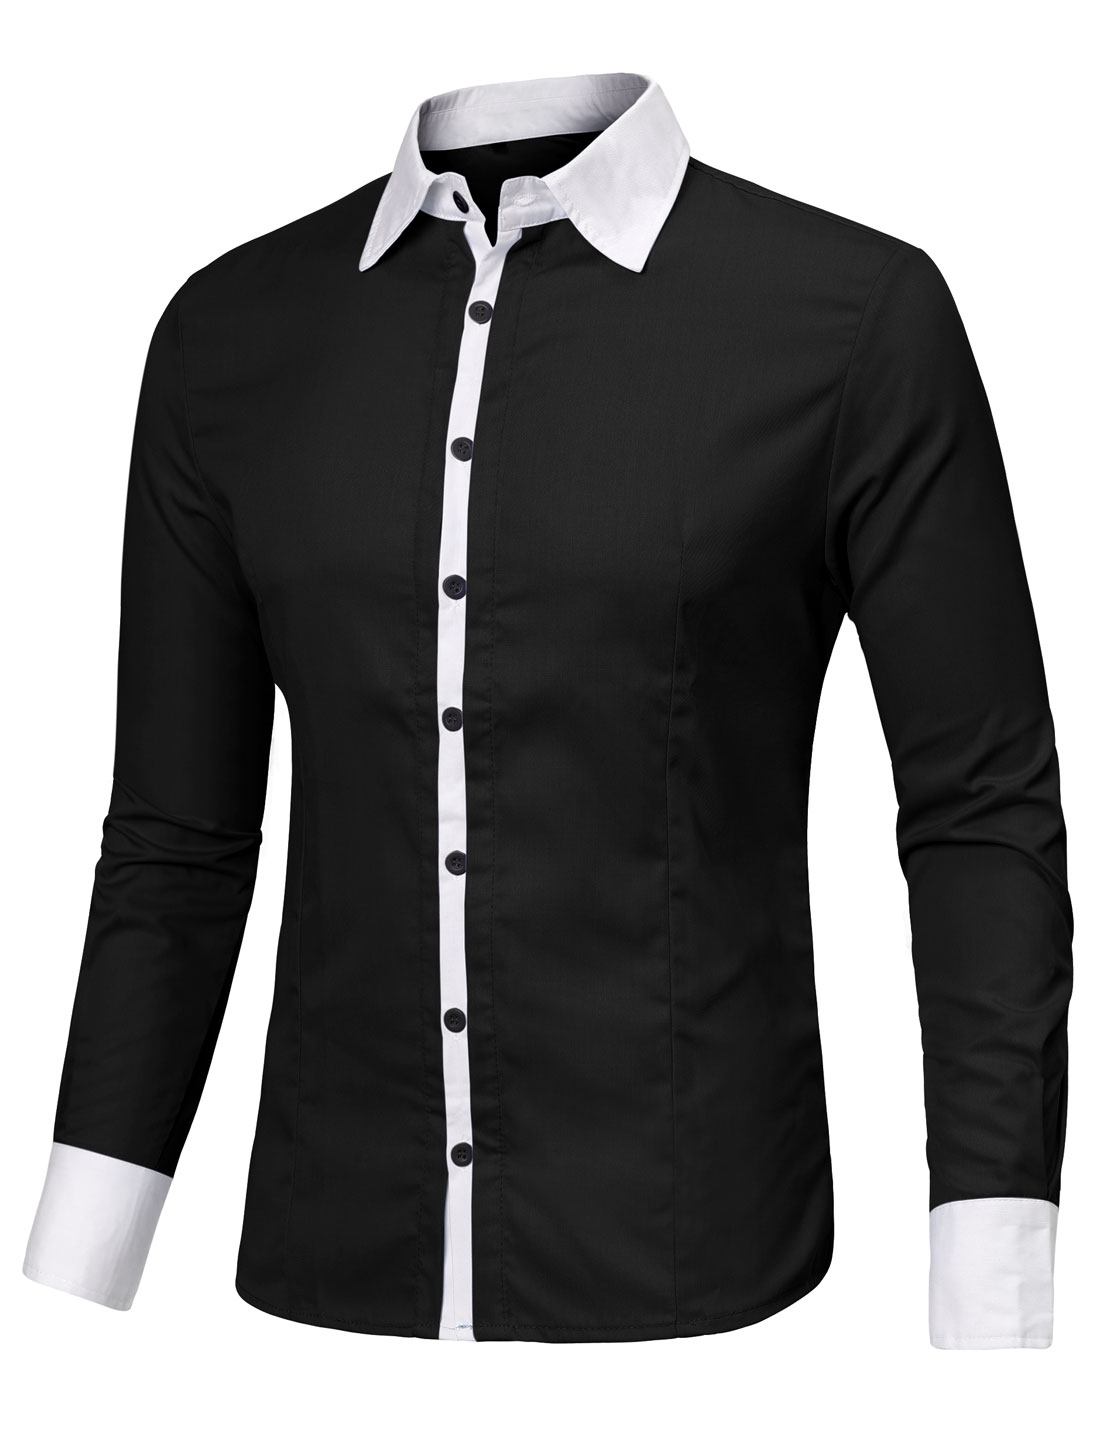 Men Buttons Up Closure Point Collar Fashion Top Shirt Black M